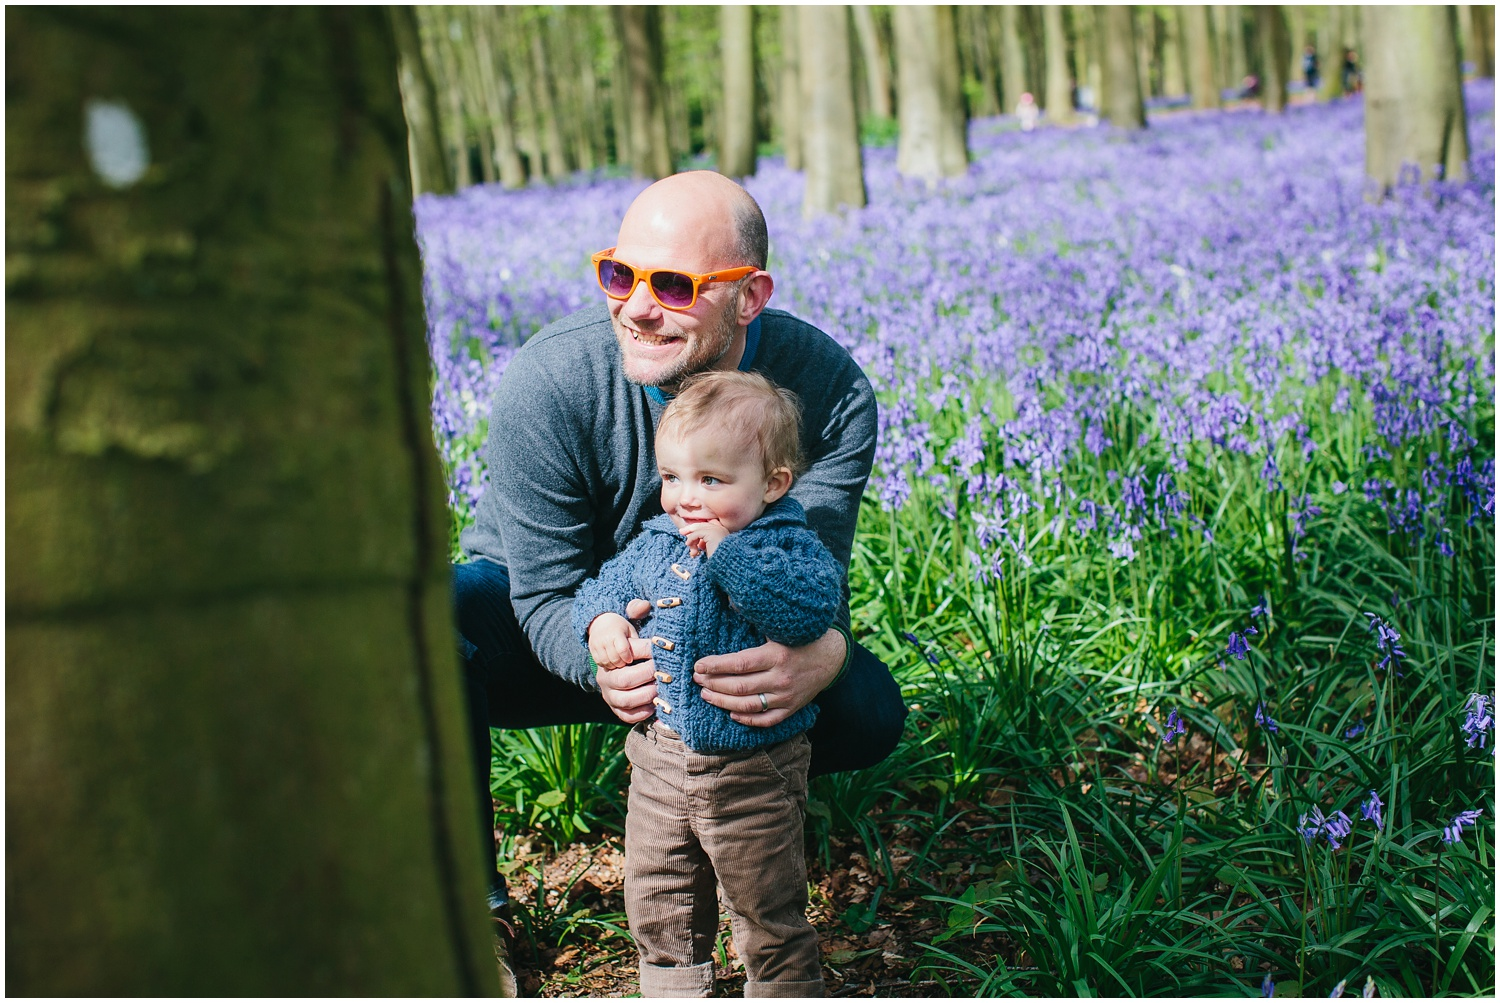 Catherine-Photography-Portraits-Family-Bluebells_0005.jpg